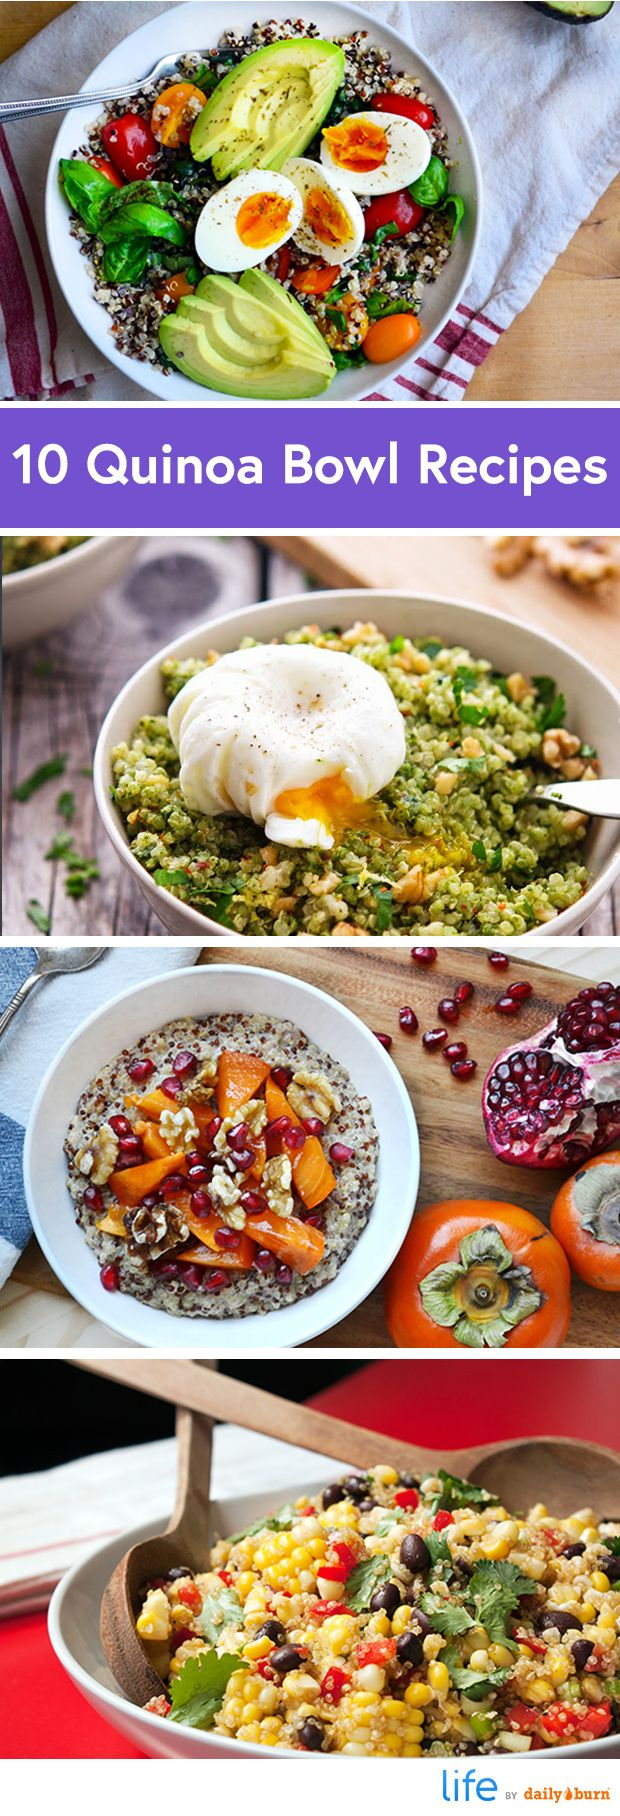 10 Quinoa Bowl Recipes for Breakfast, Lunch and Dinner | #DailyBurn #Healthy #Recipes